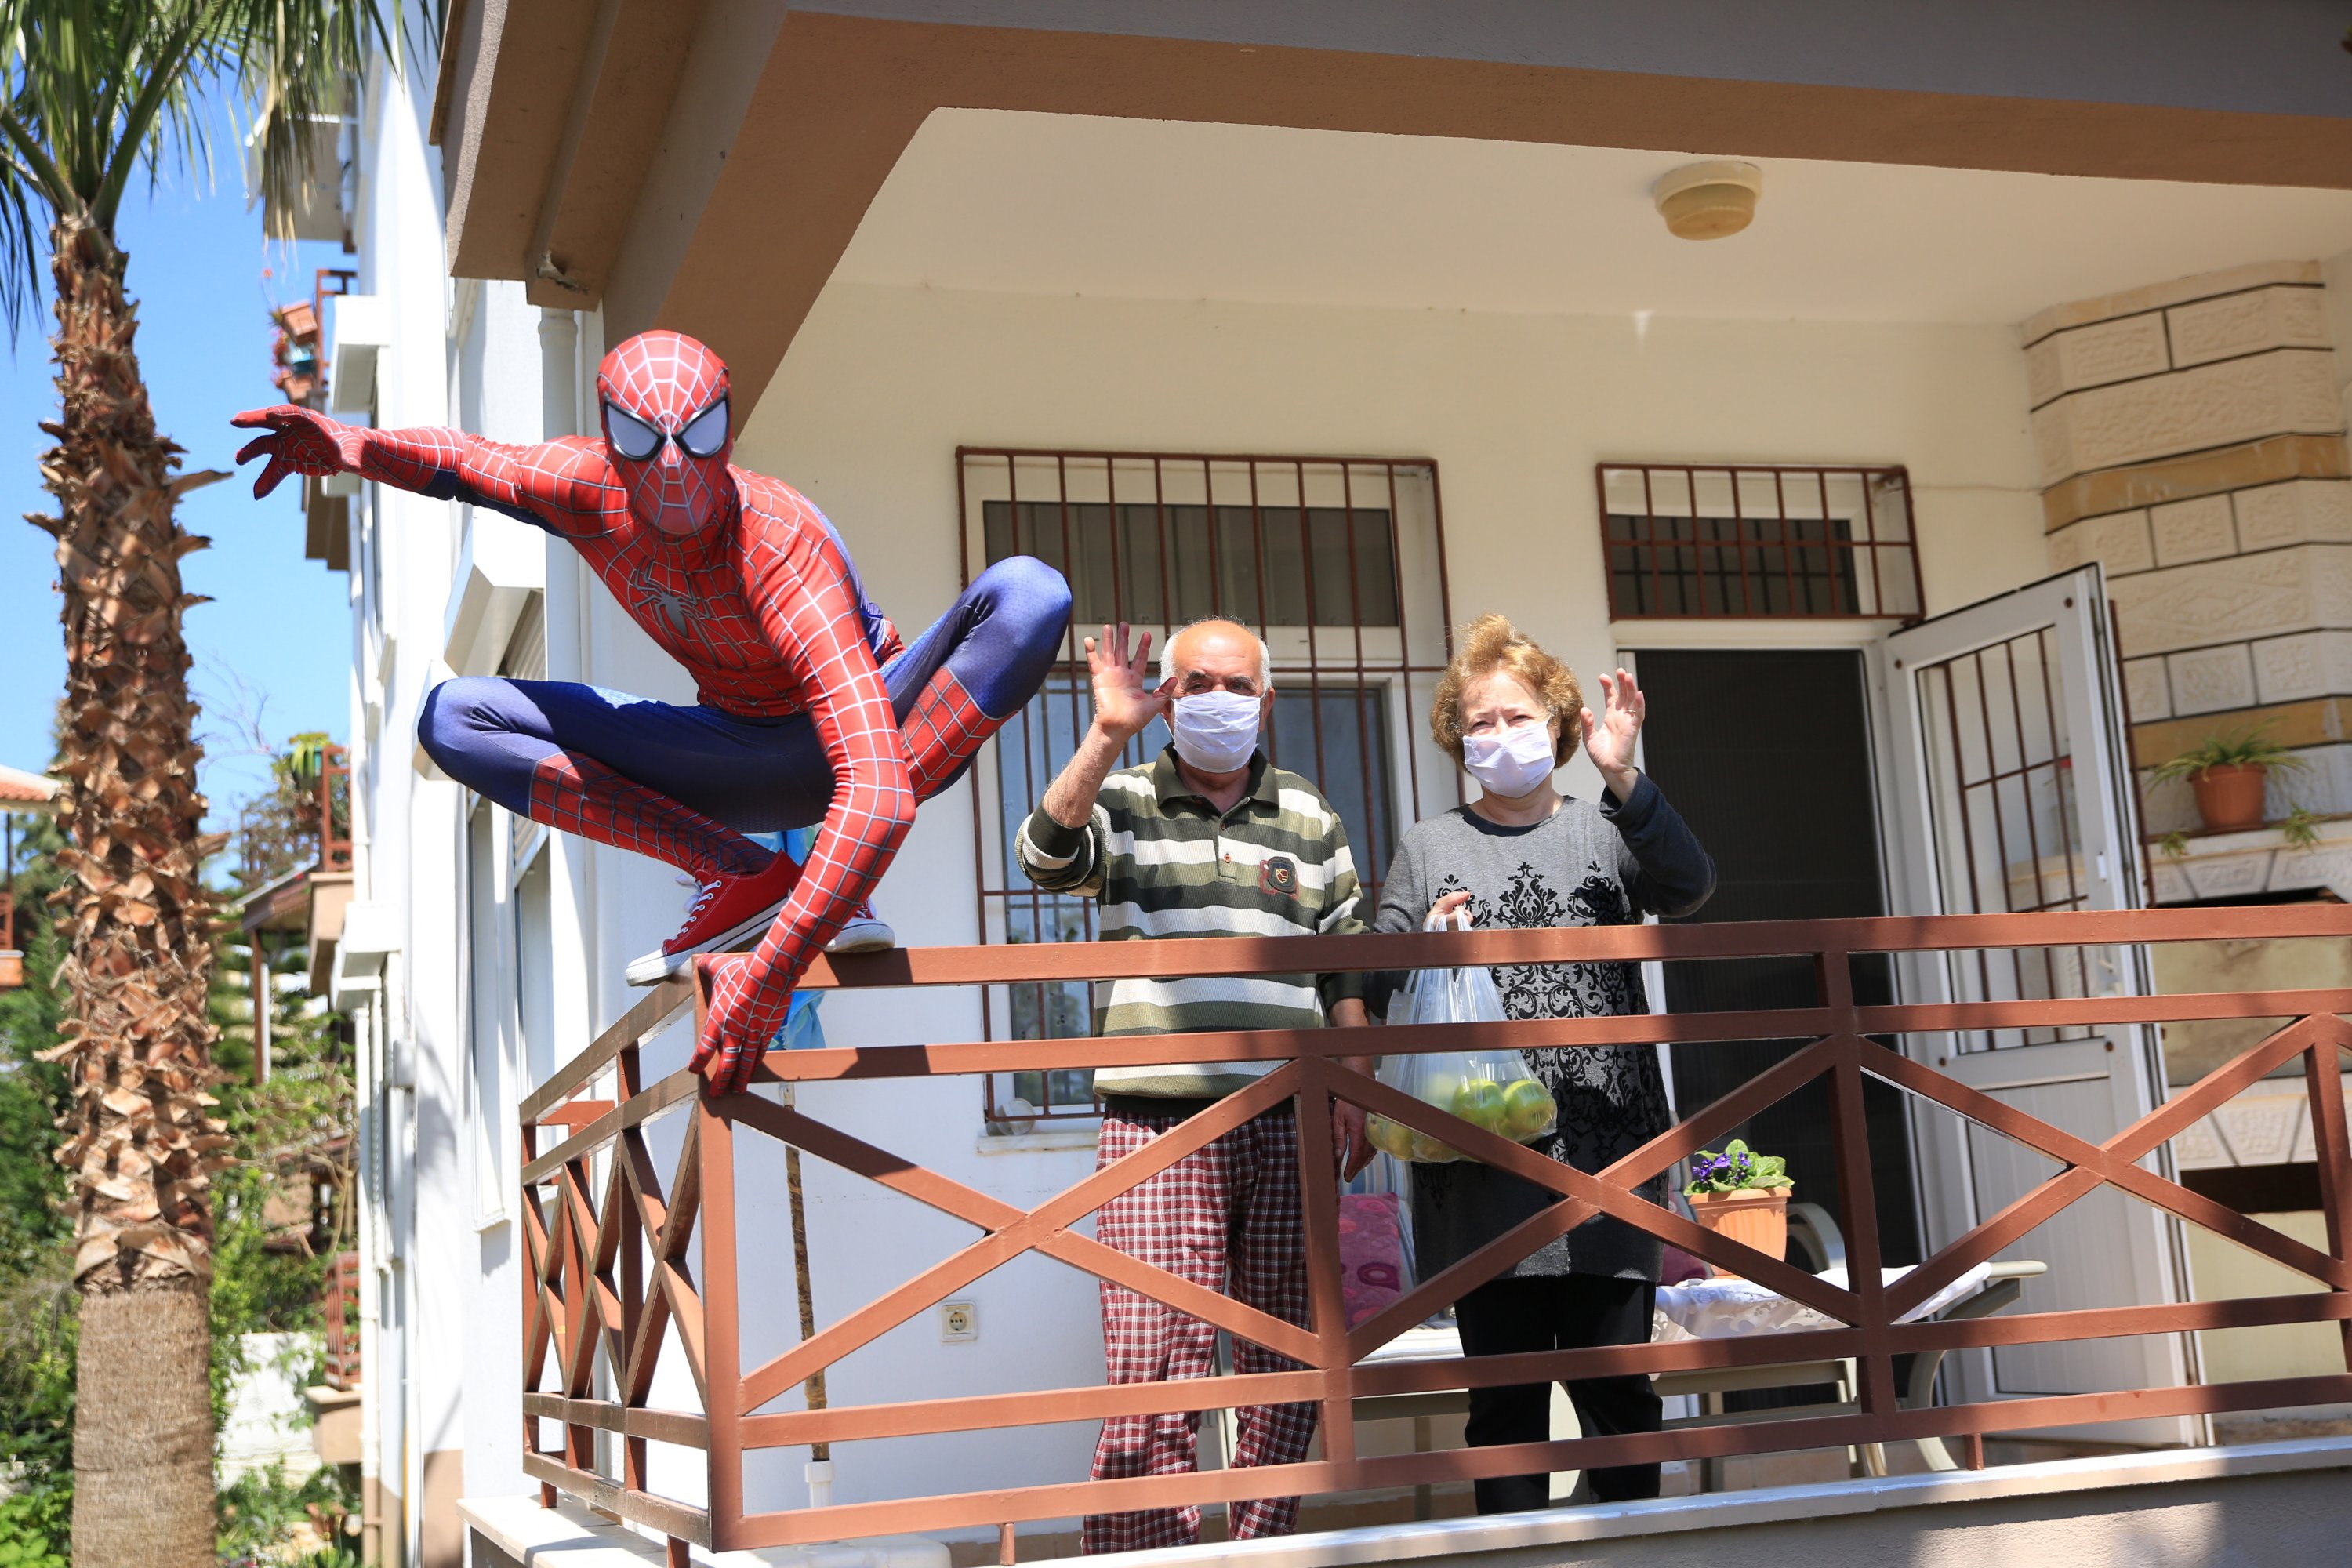 Burak Soylu, wearing the Spiderman costume, poses for a photo on a balcony fence after bringing groceries for a couple, who are staying at home due the coronavirus (COVID-19) pandemic in Antalya, Turkey, Tuesday, April 14, 2020. (AA Photo)